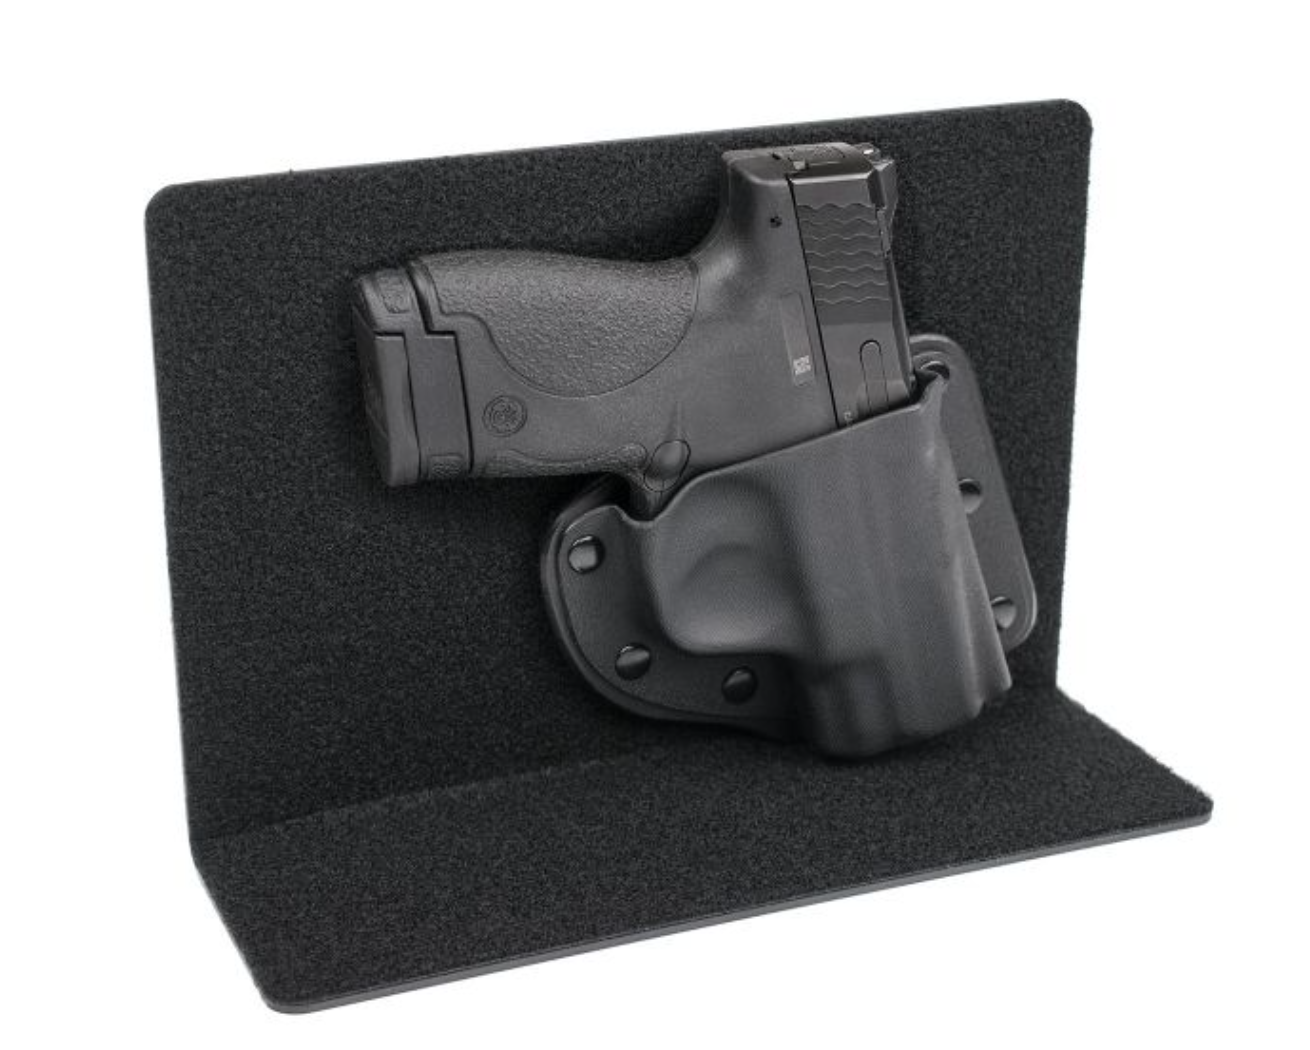 Purse Defender, Crossbreed Holsters, $52.95 - I realize this isn't a purse, but if you want to purse carry in a bag you already have -- this is an excellent option for you.  The Velcro-lined L-shaped Kydex panel fits securely in your purse, keeping your gun stabilized, and the handcrafted modular holsters fits a variety of small to medium-sized handguns.  For a complete list, click